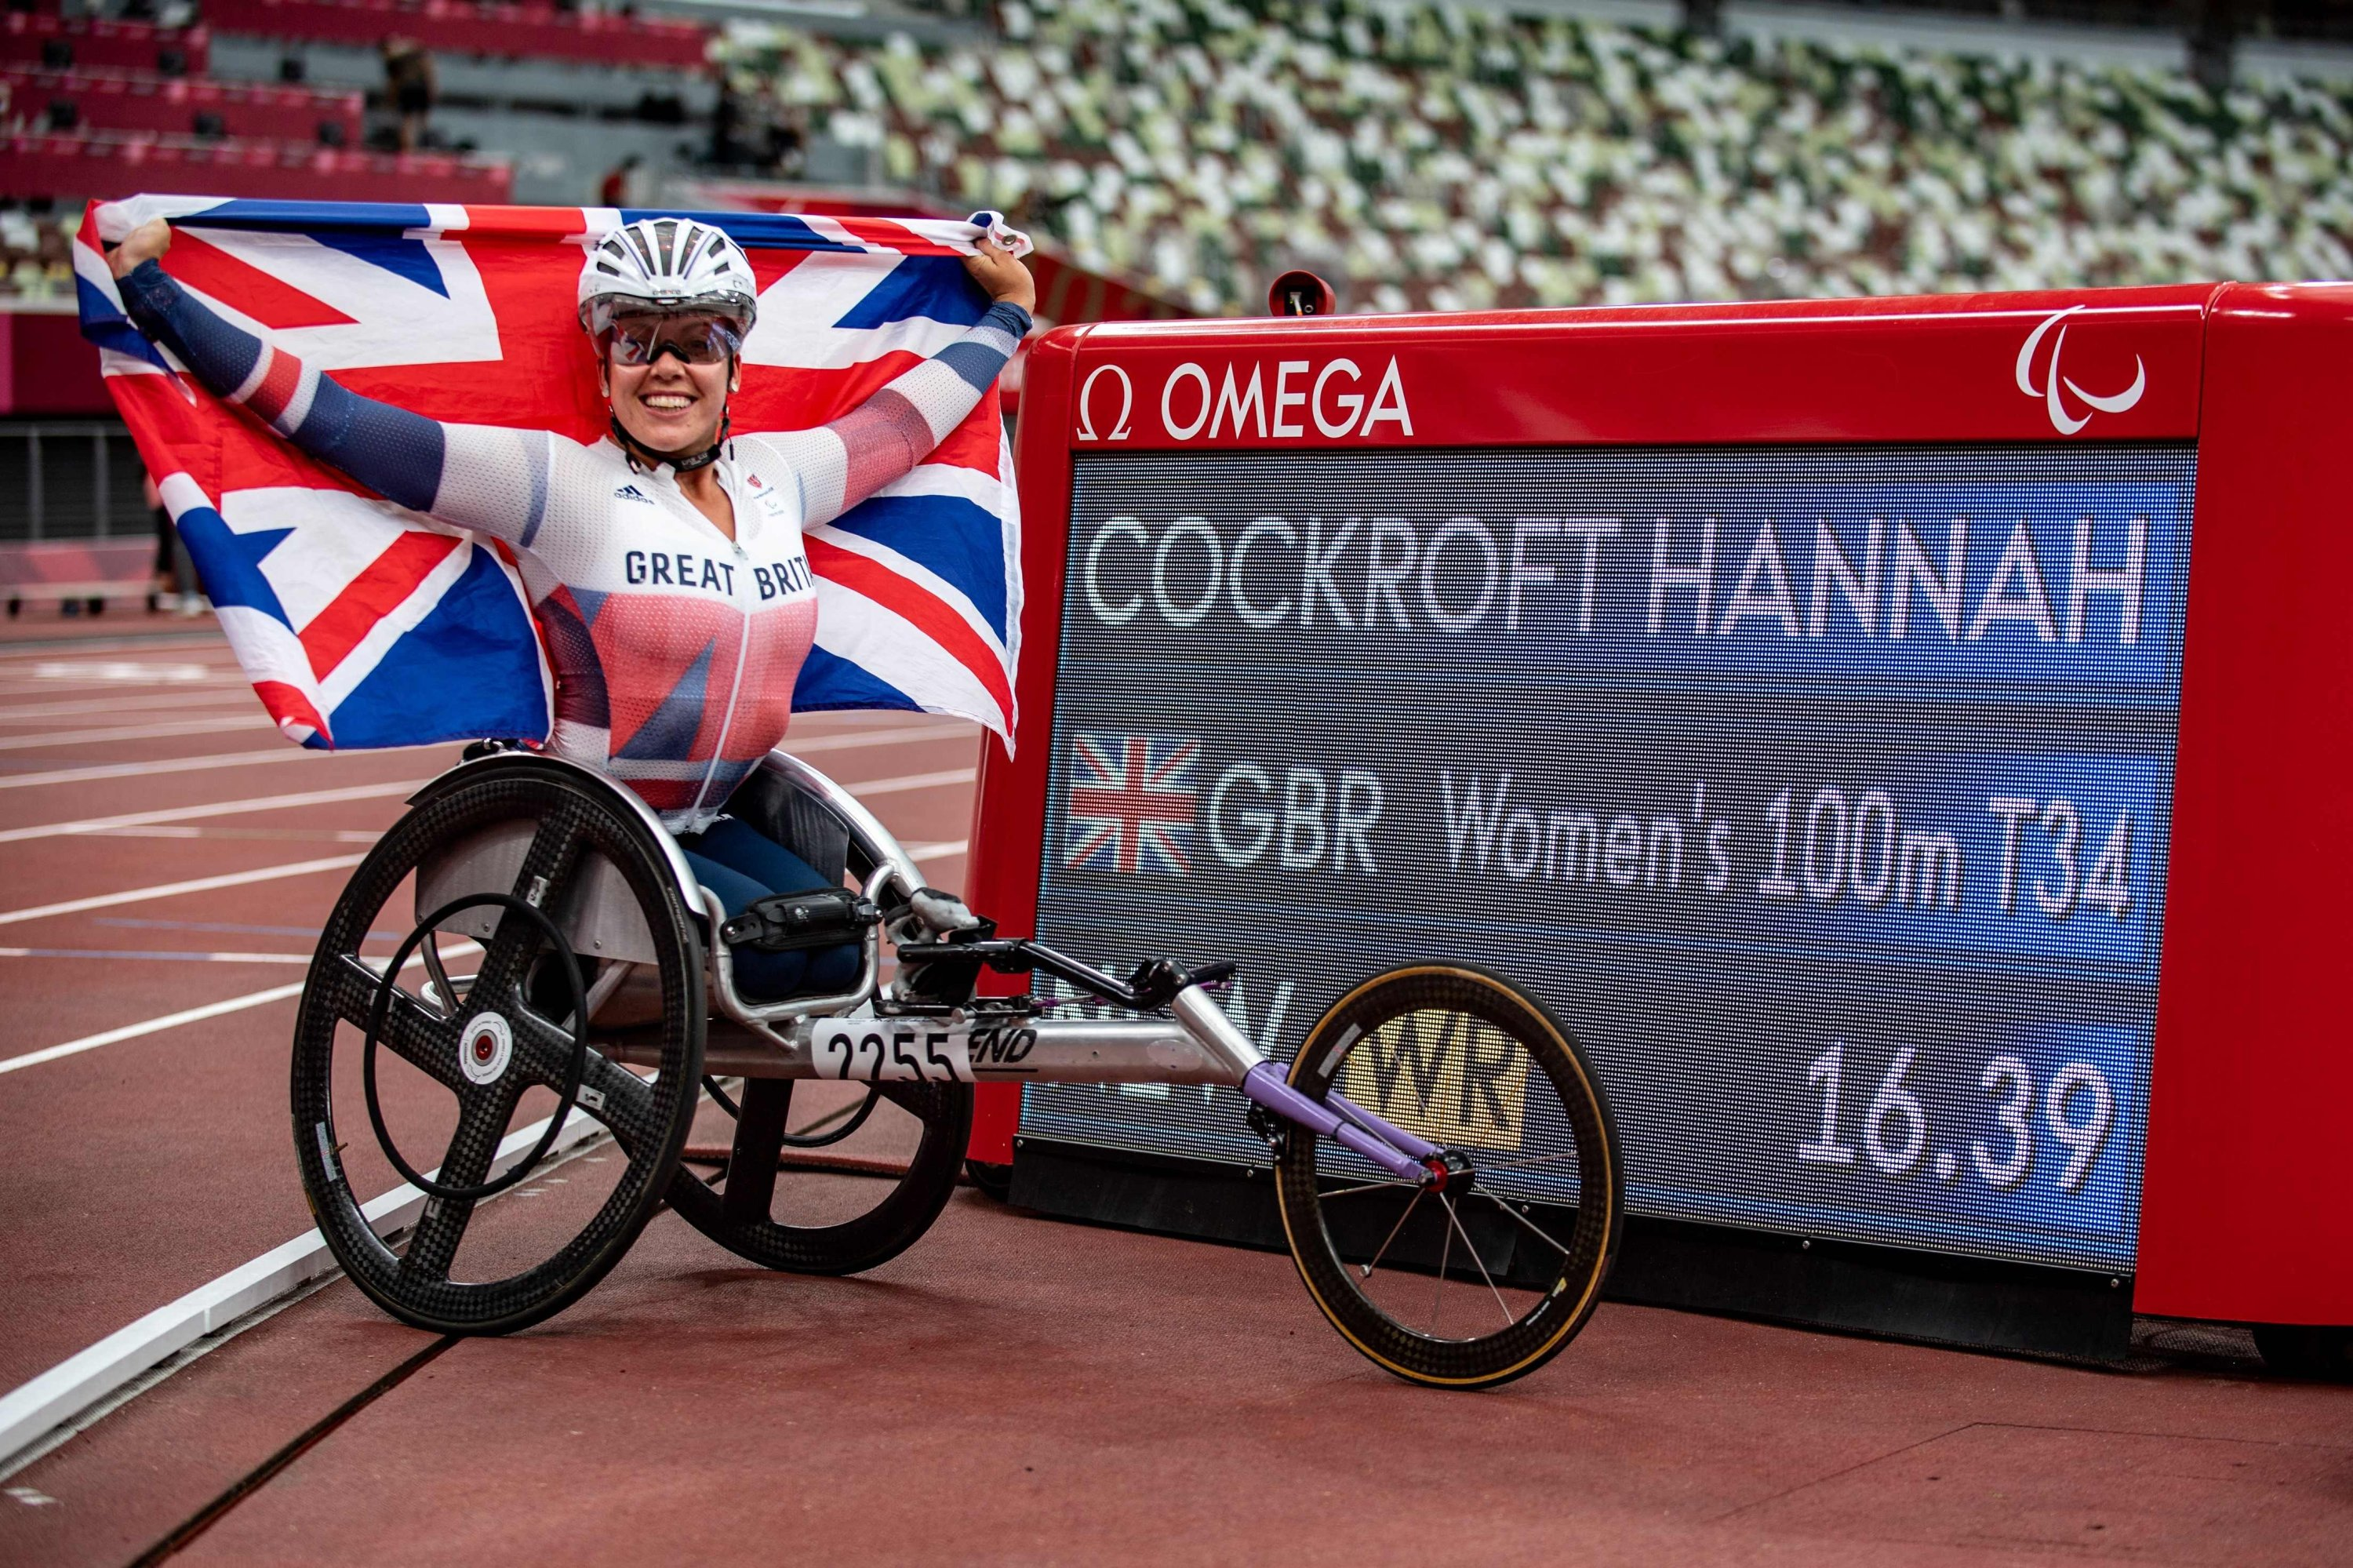 Britain's Hannah Cockroft reacts after competing in the women's 100-meter T34 final of the Tokyo 2020 Paralympic Games at the Olympic Stadium in Tokyo on Aug. 29, 2021. (AFP Photo)